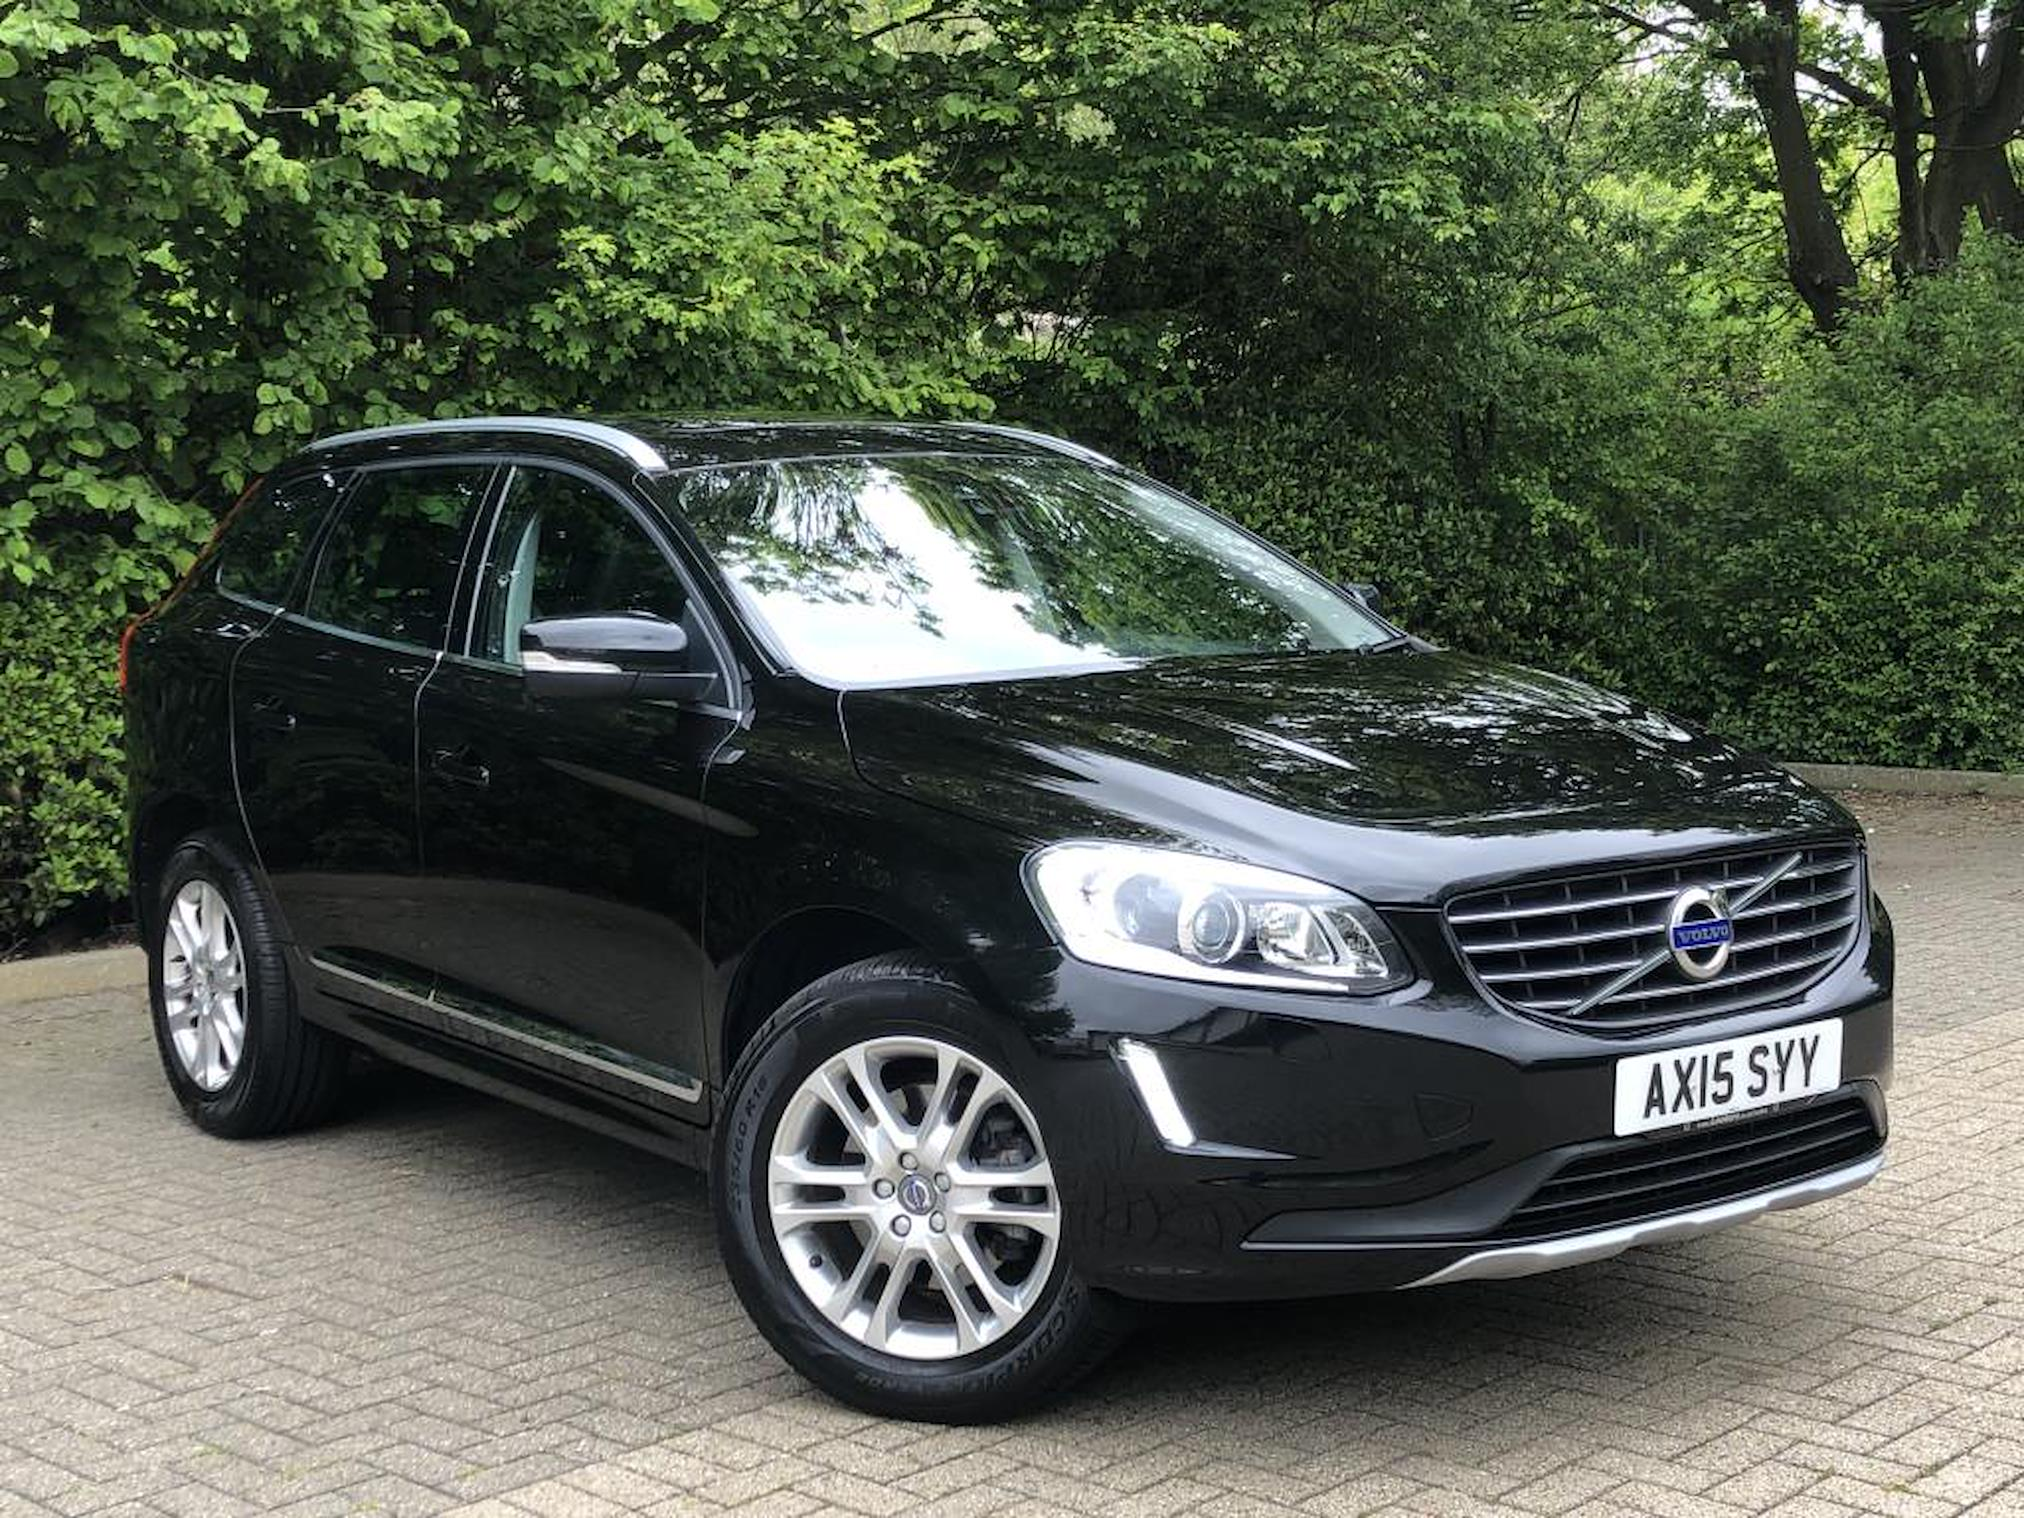 Used XC60 VOLVO D4 [190] Se Lux Nav 5Dr 2016 | Lookers